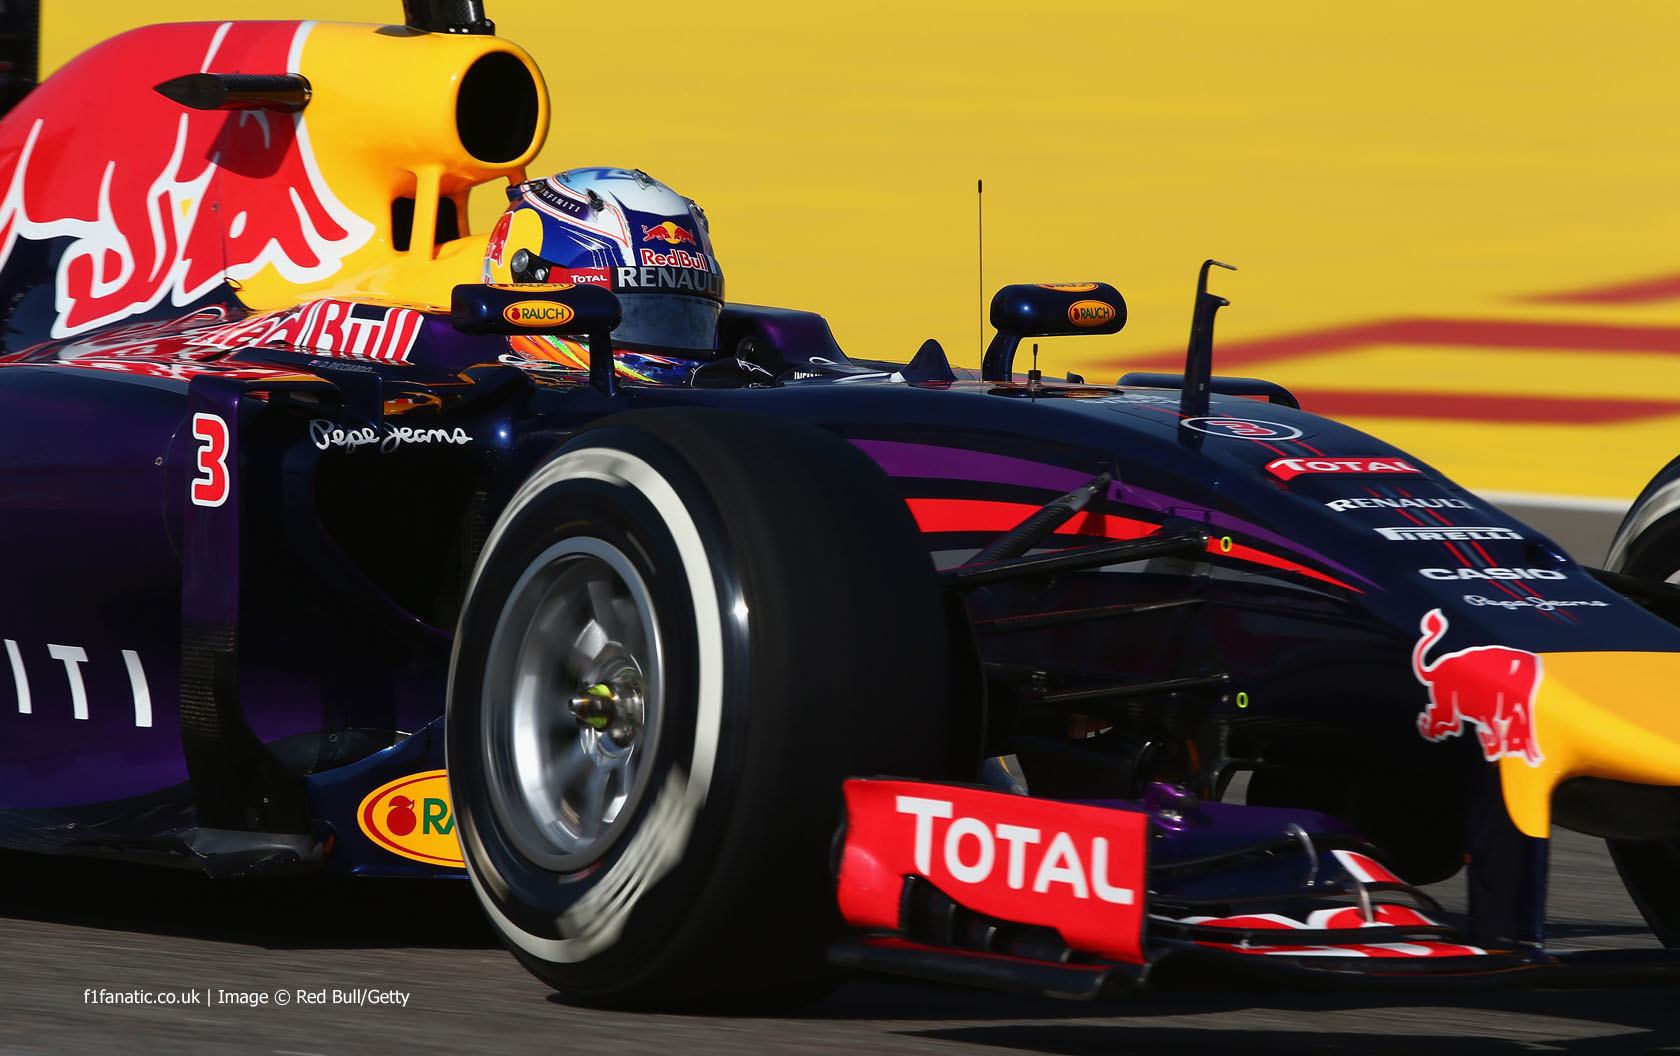 Daniel Ricciardo, Red Bull, Bahrain International Circuit, 2014